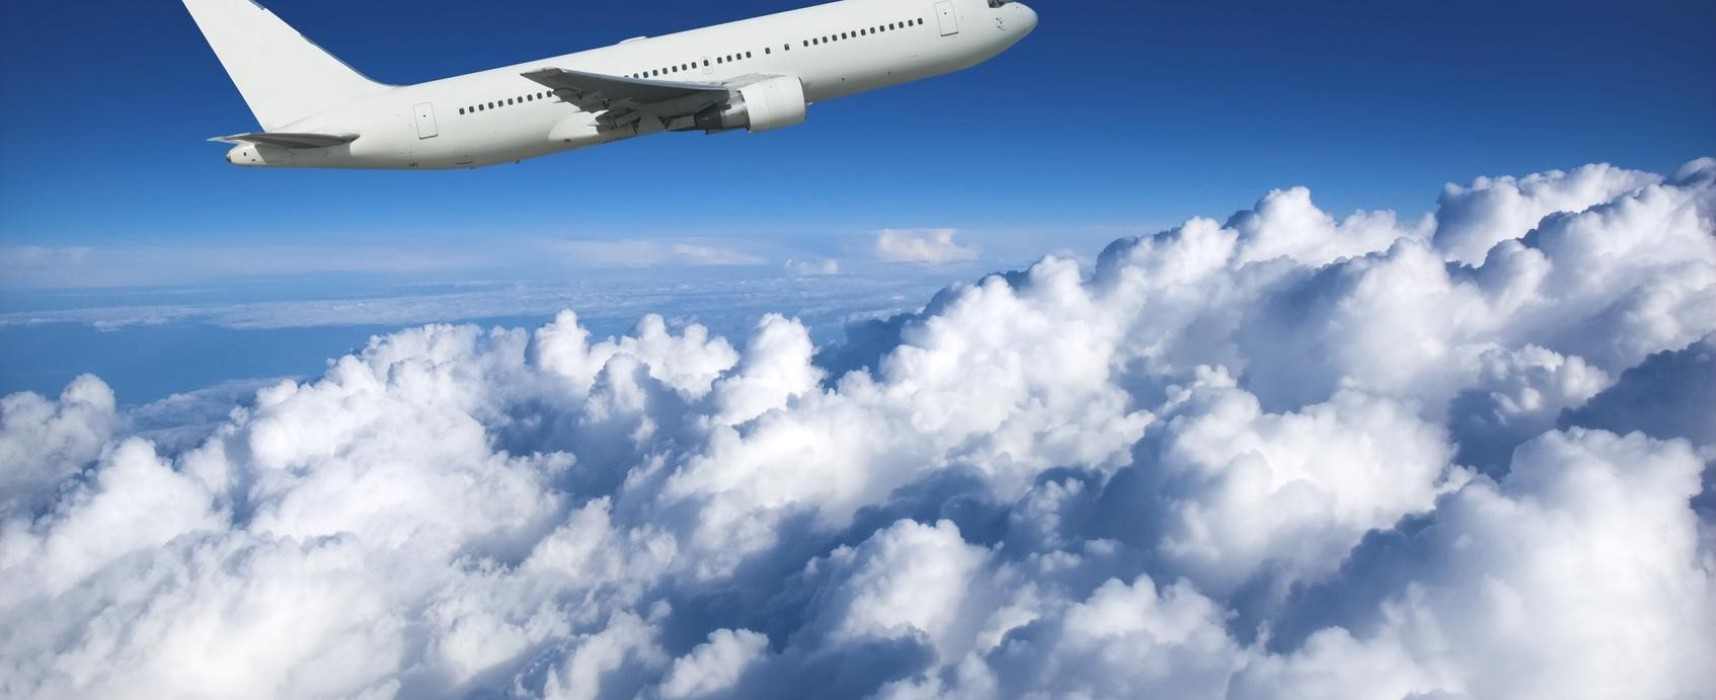 Learn More About The Criteria You Should Be Looking For In A Top Notch Flight School